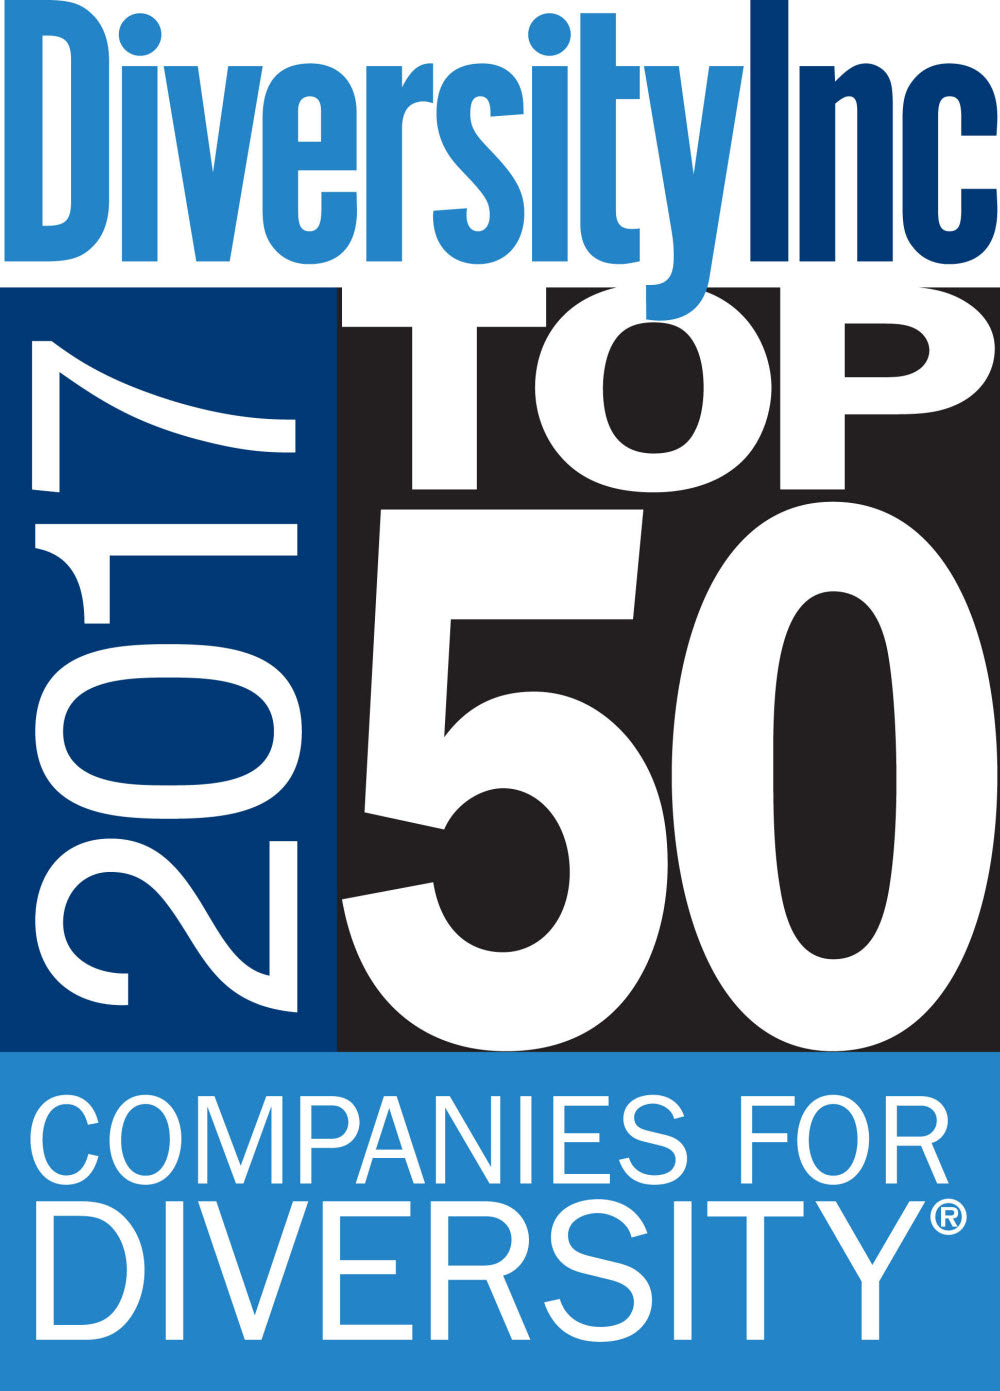 2017 Award for Kellogg's DiversityInc Top Fifty companies for Diversity list Ranked Number Twenty Eight.